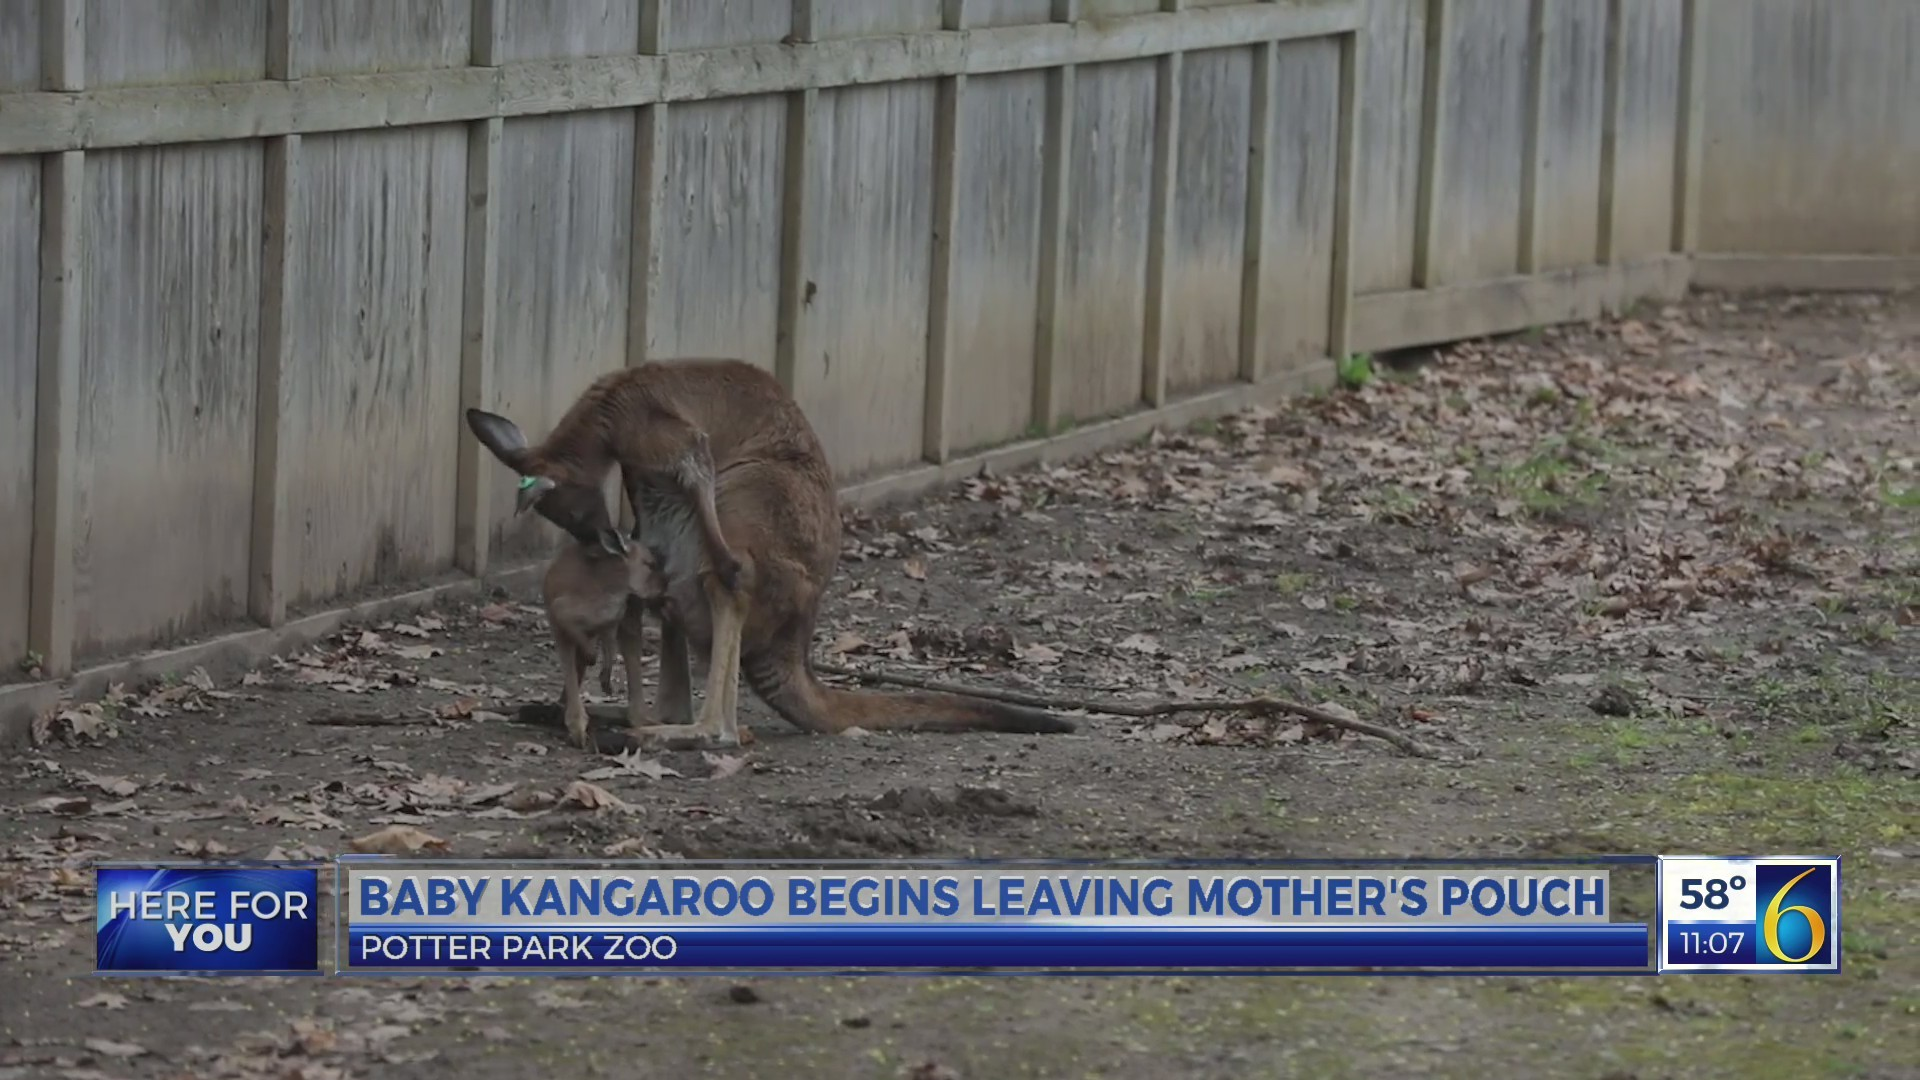 Baby kangaroo begins leaving mother's pouch